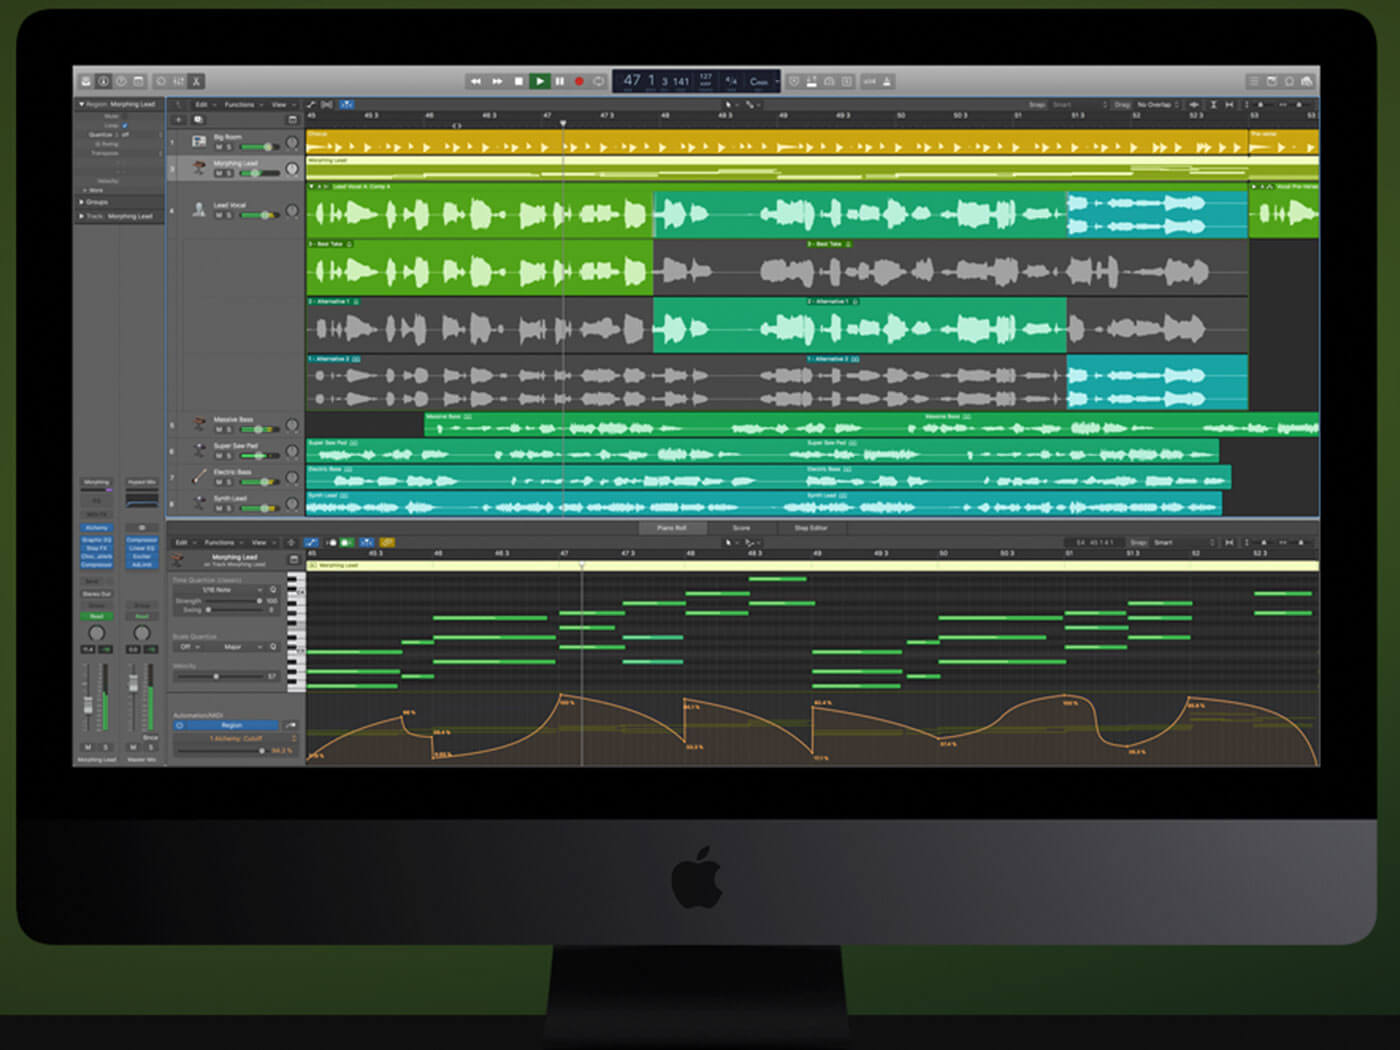 Apple's Logic Pro X